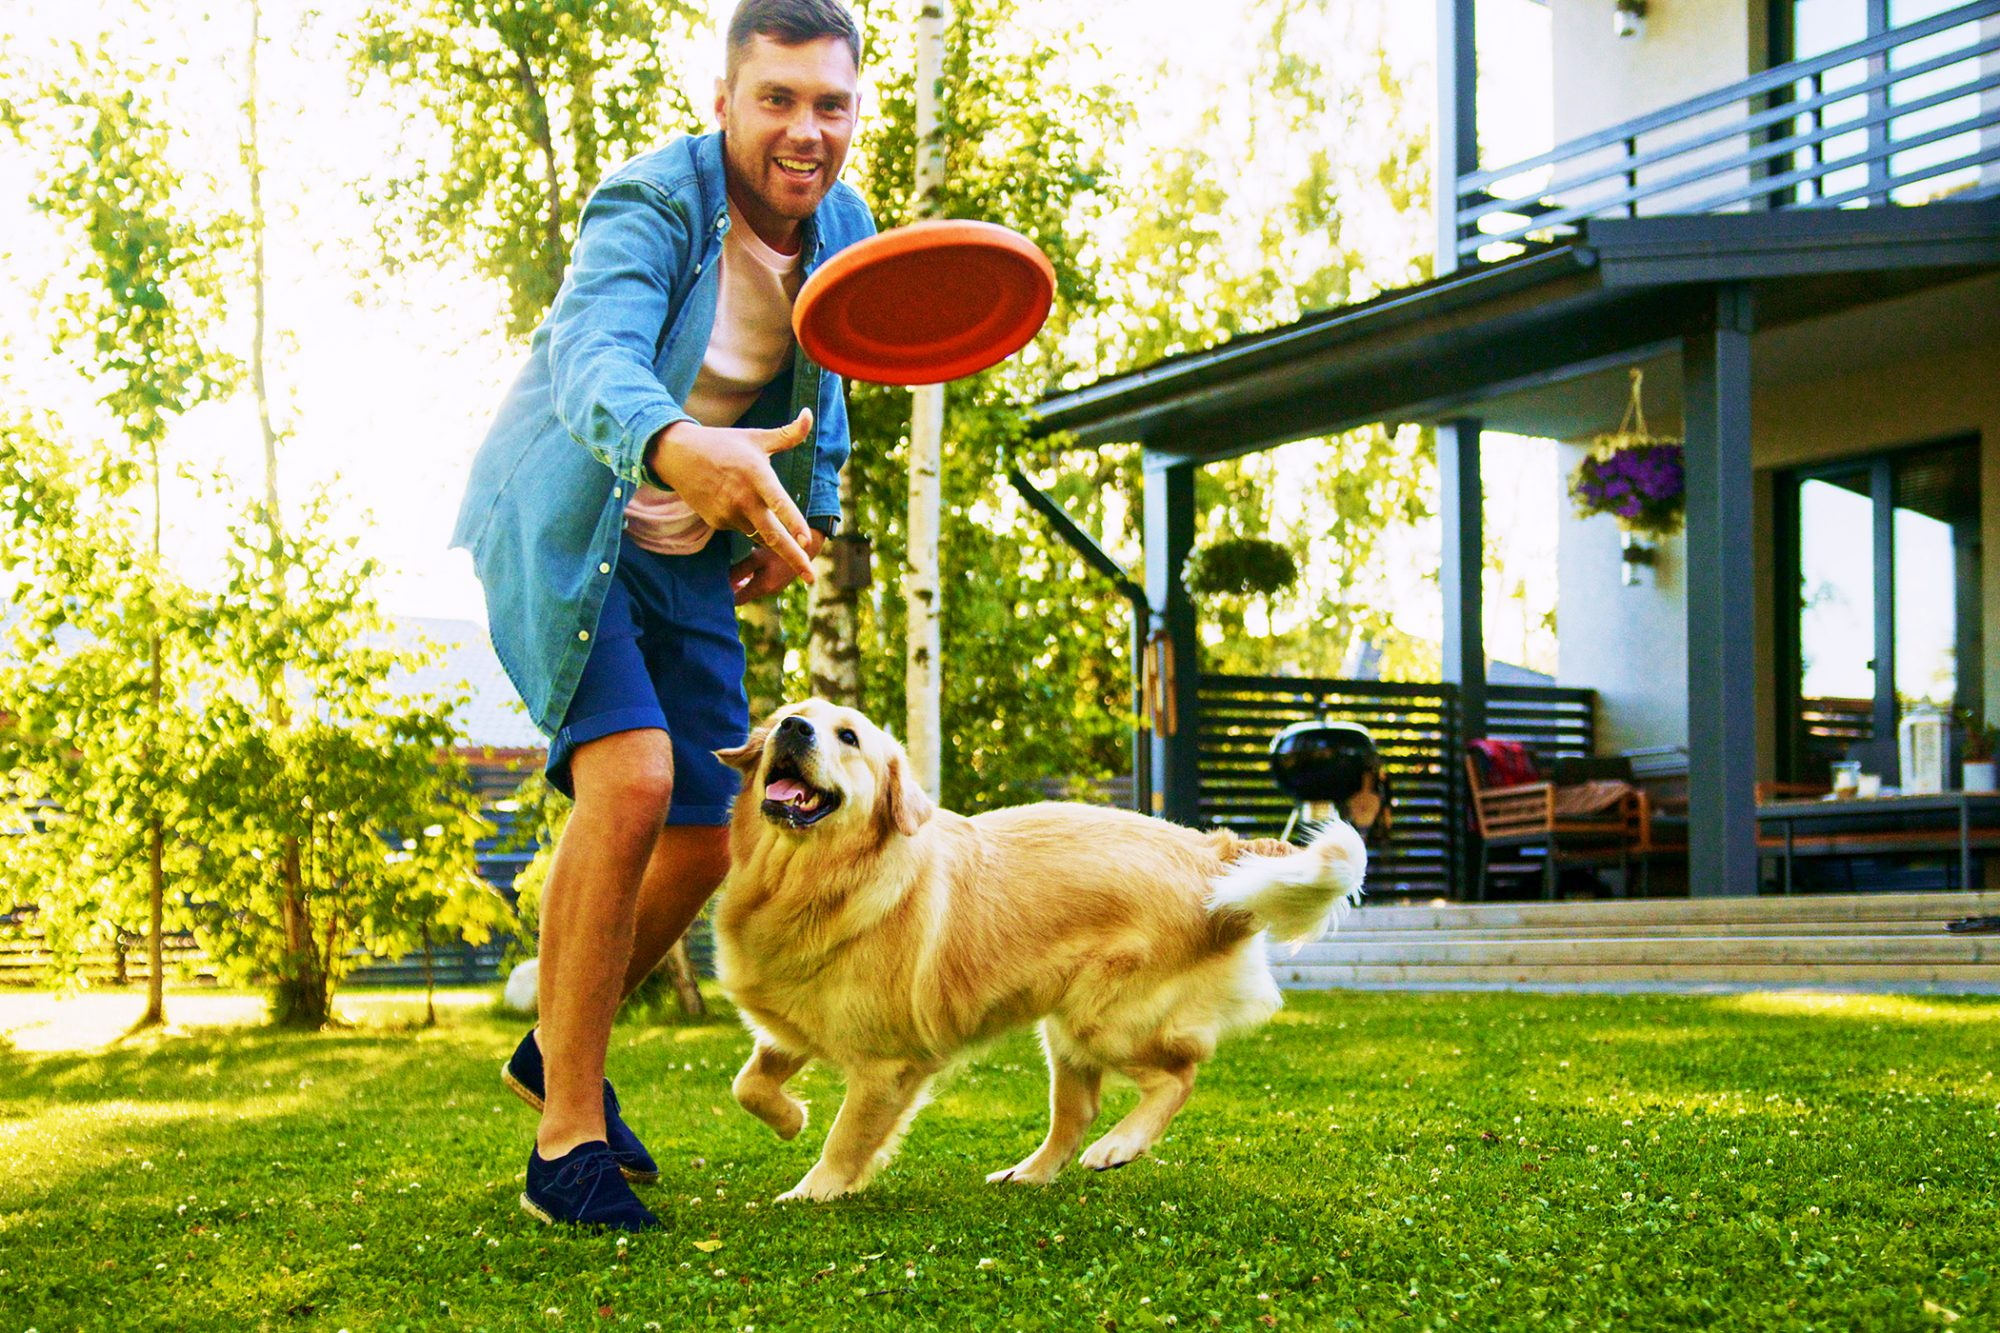 man throwing frisbee for dog